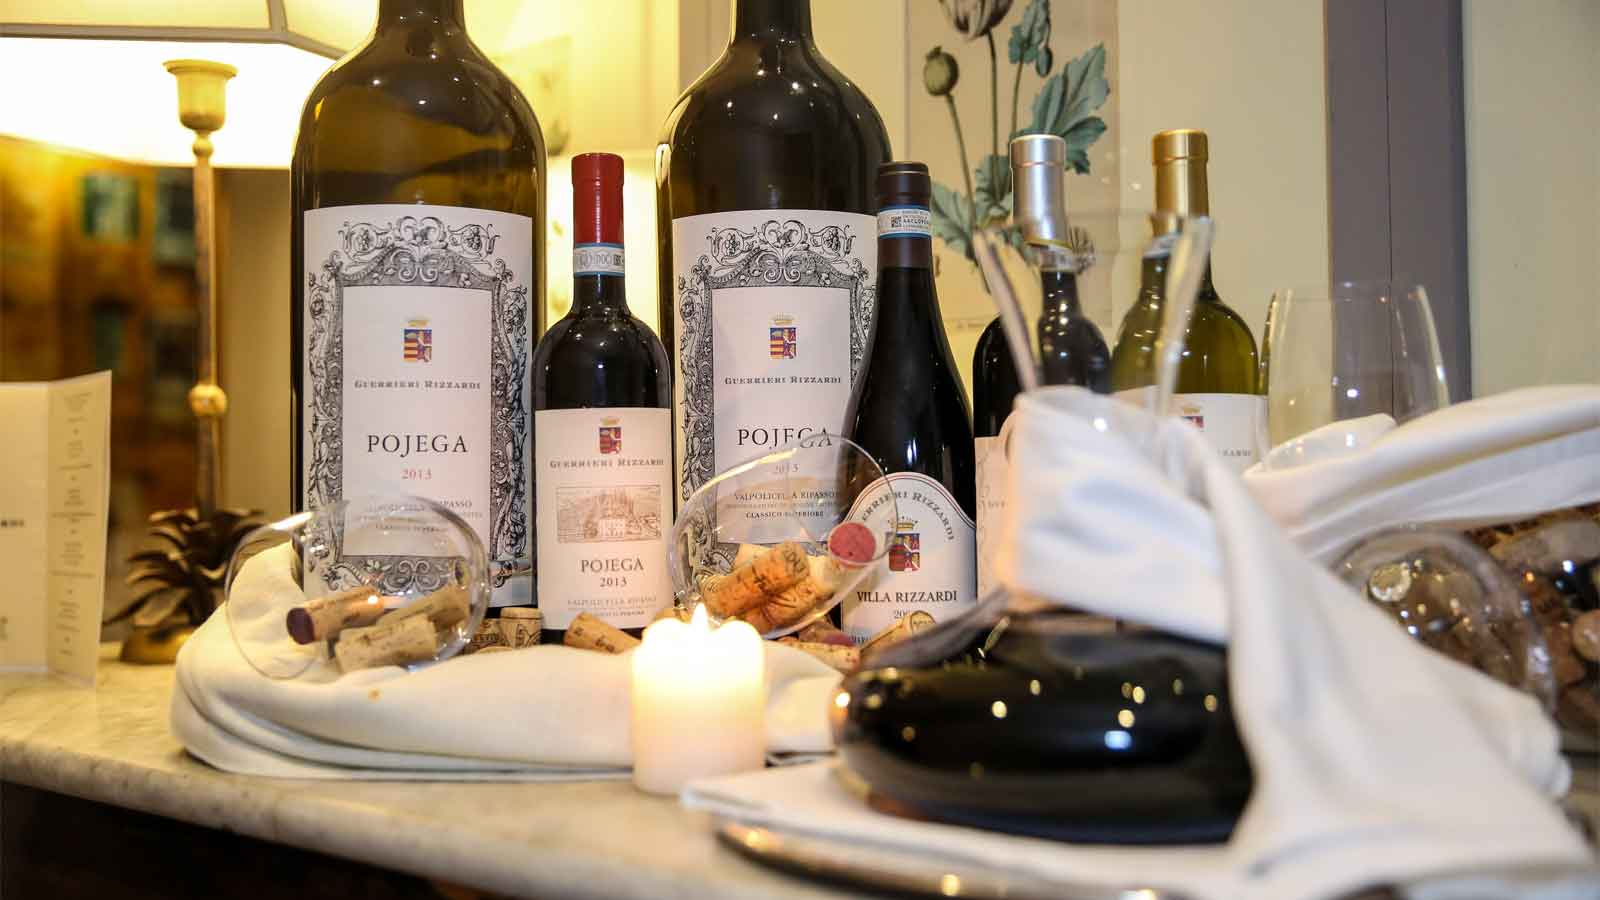 Guerrieri Rizzardi Masterclass and Winemaker's Dinner